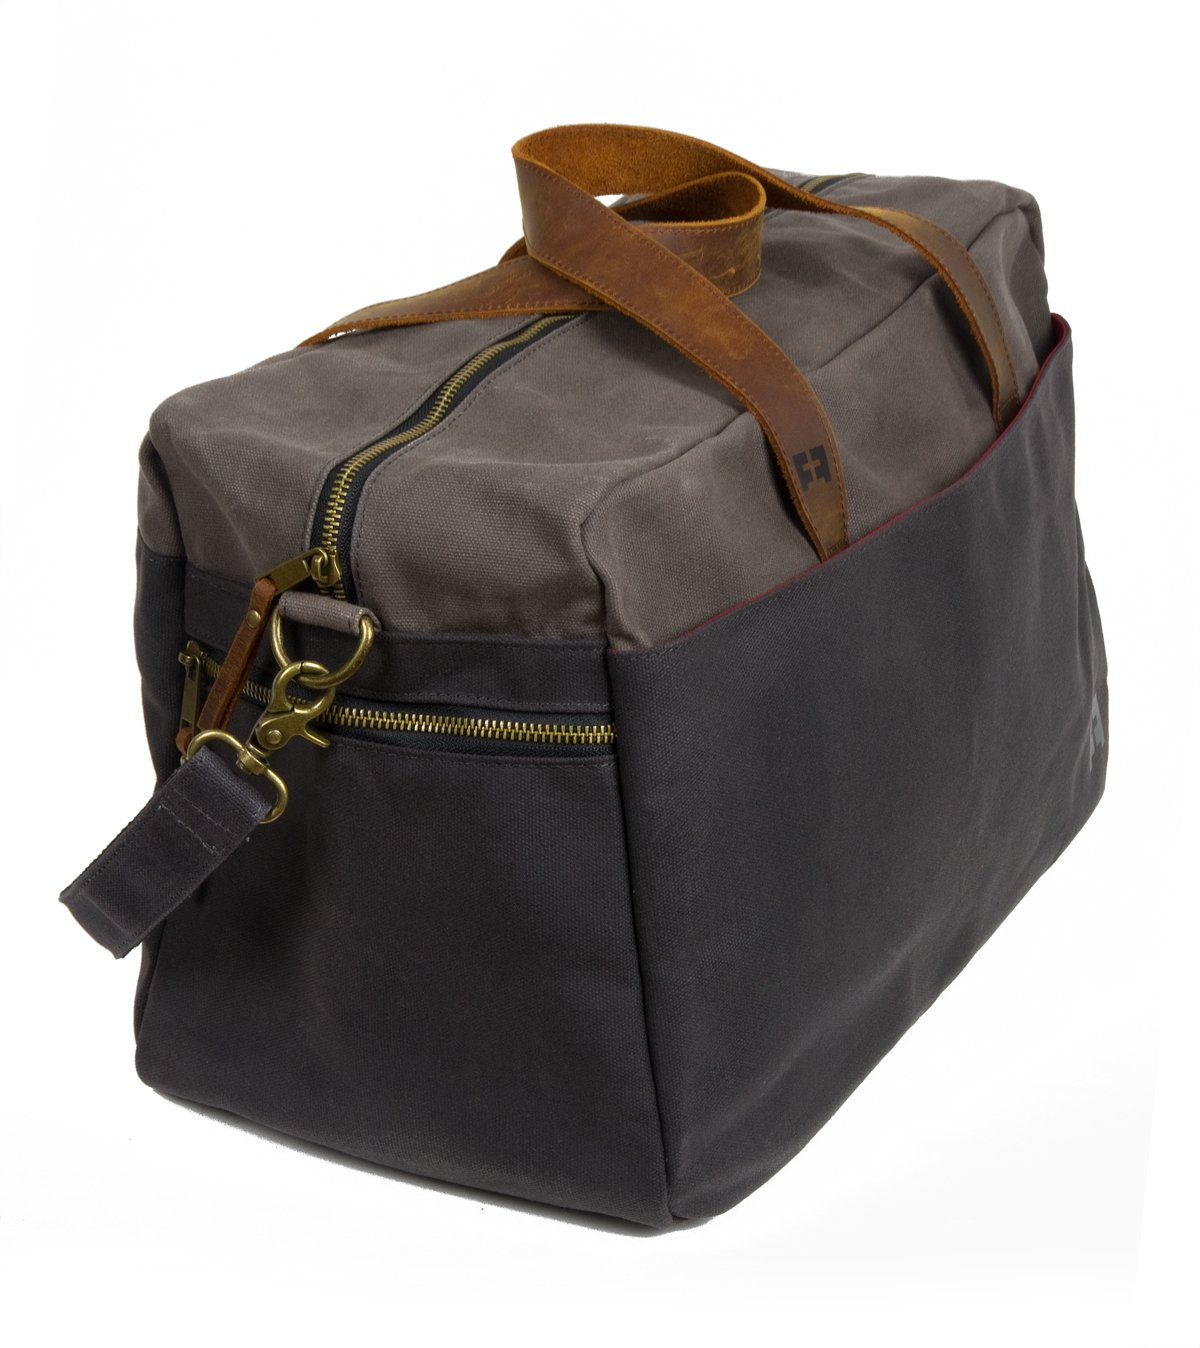 Waxed Cotton Canvas Duffel Bag with Leather Handles | the Whitman Weekender Duffel by FAT FELT by FAT FELT (Image #4)